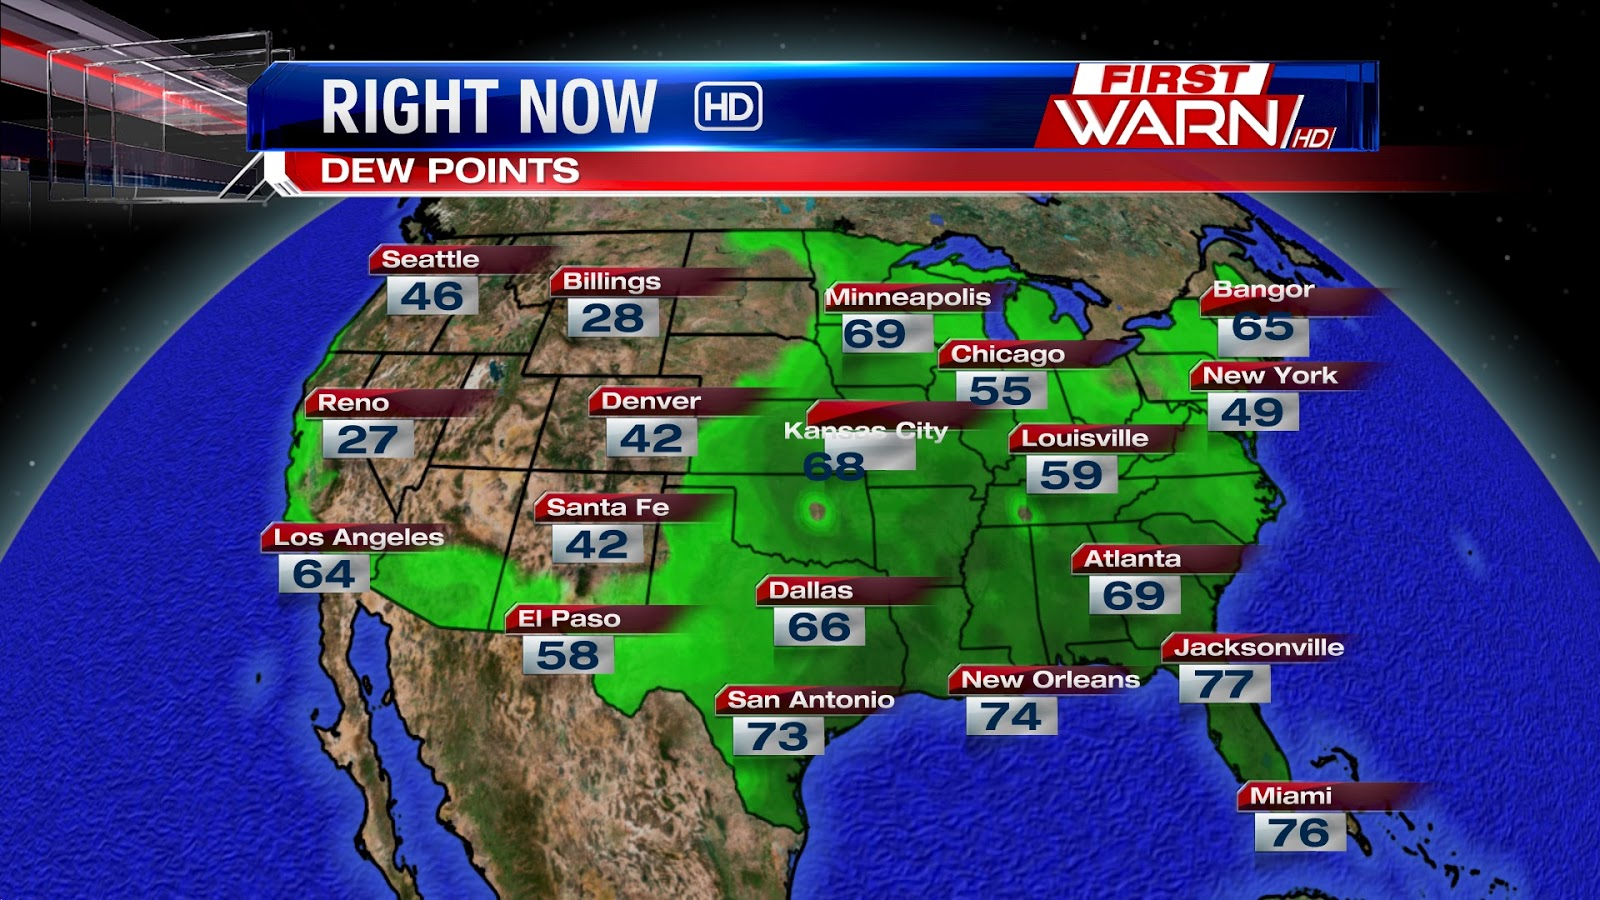 First Warn Weather Team August - Map of dew points us